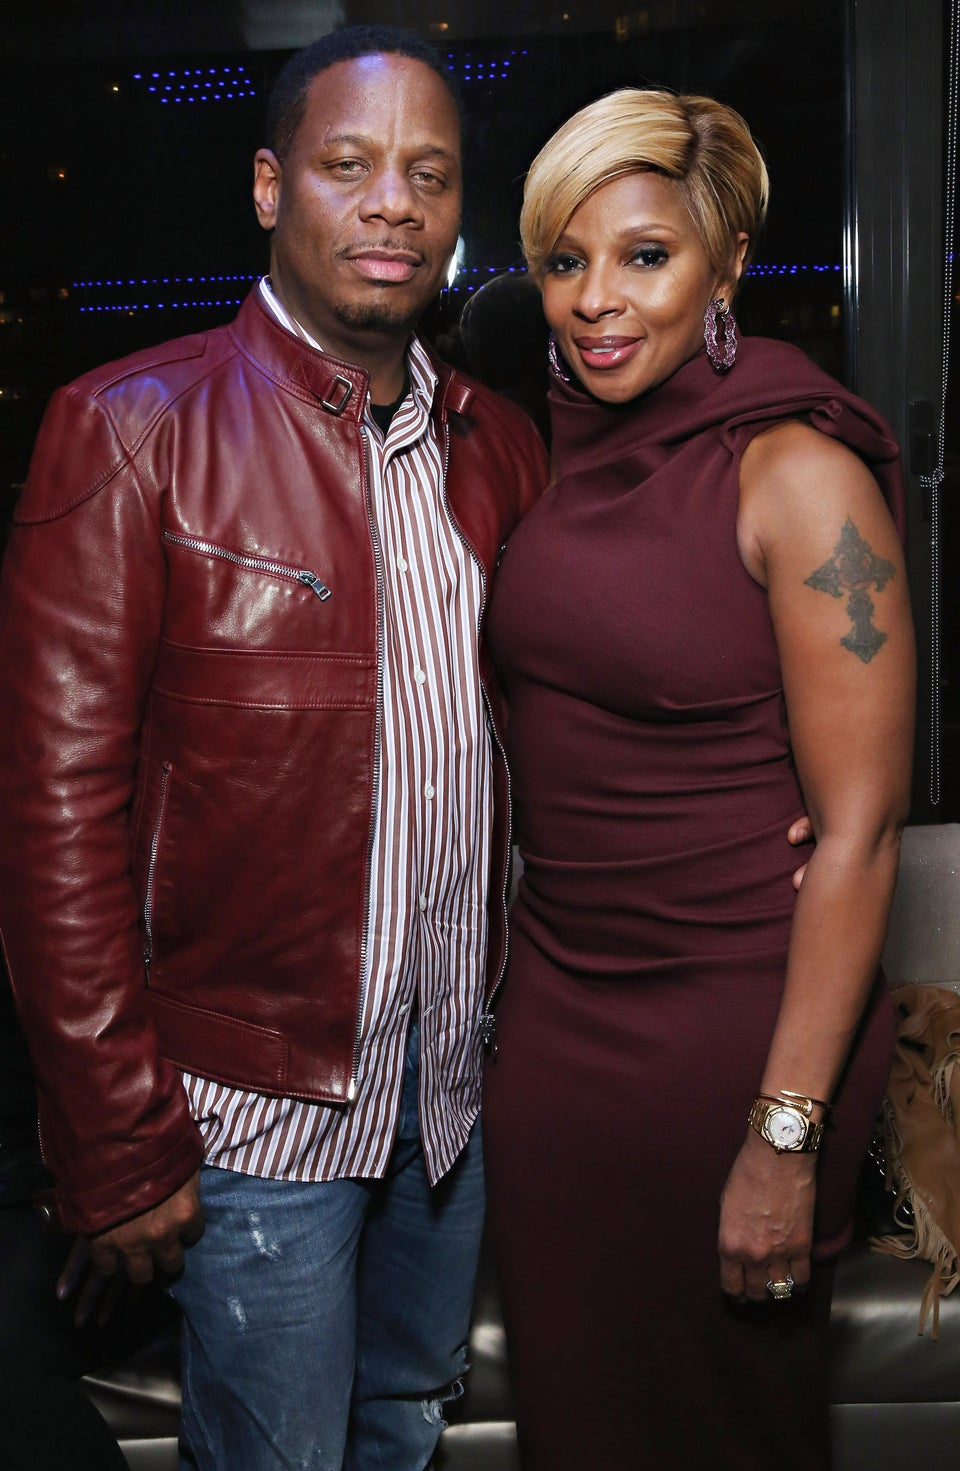 Mary J. Blige's Ex Claims She Is Painting Him Out To Be A VillainDuring Her Concerts